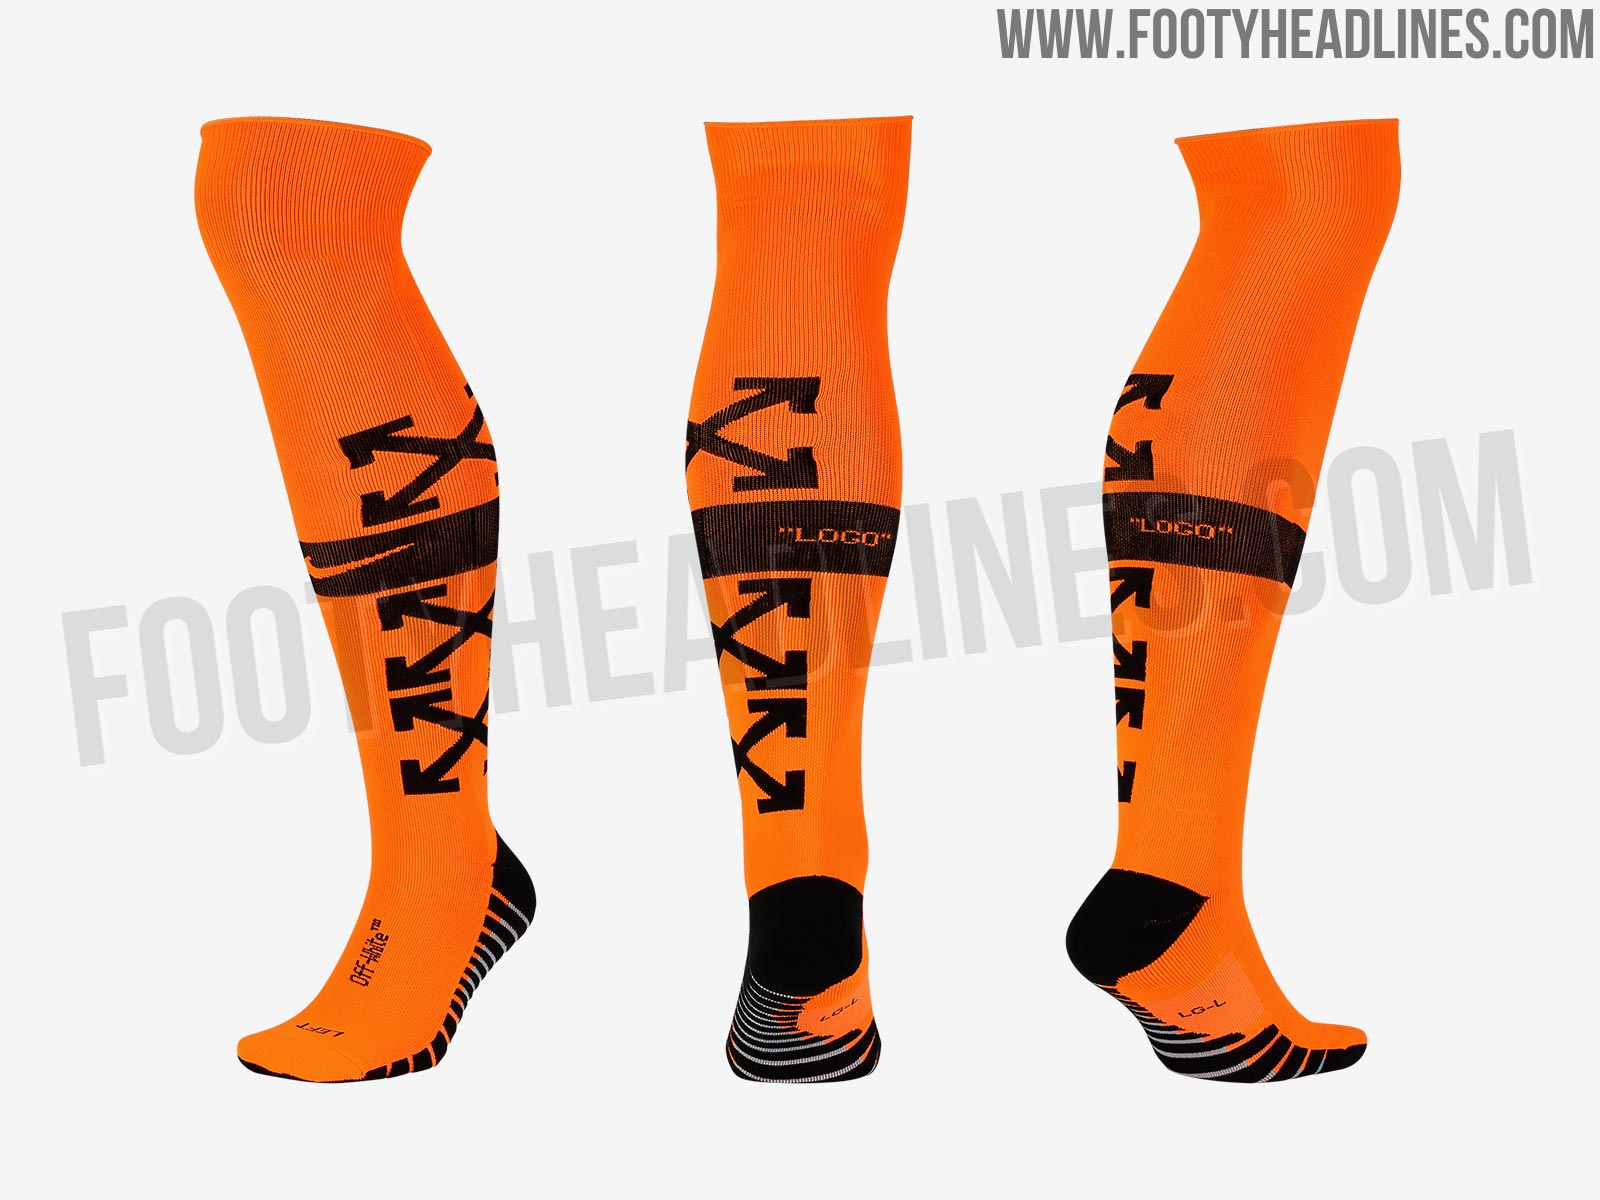 44e78f30c24 Nike Football Off-White Socks. The socks are colored in a garish orange  with a black band around the calf and three  X  logos on the outside.